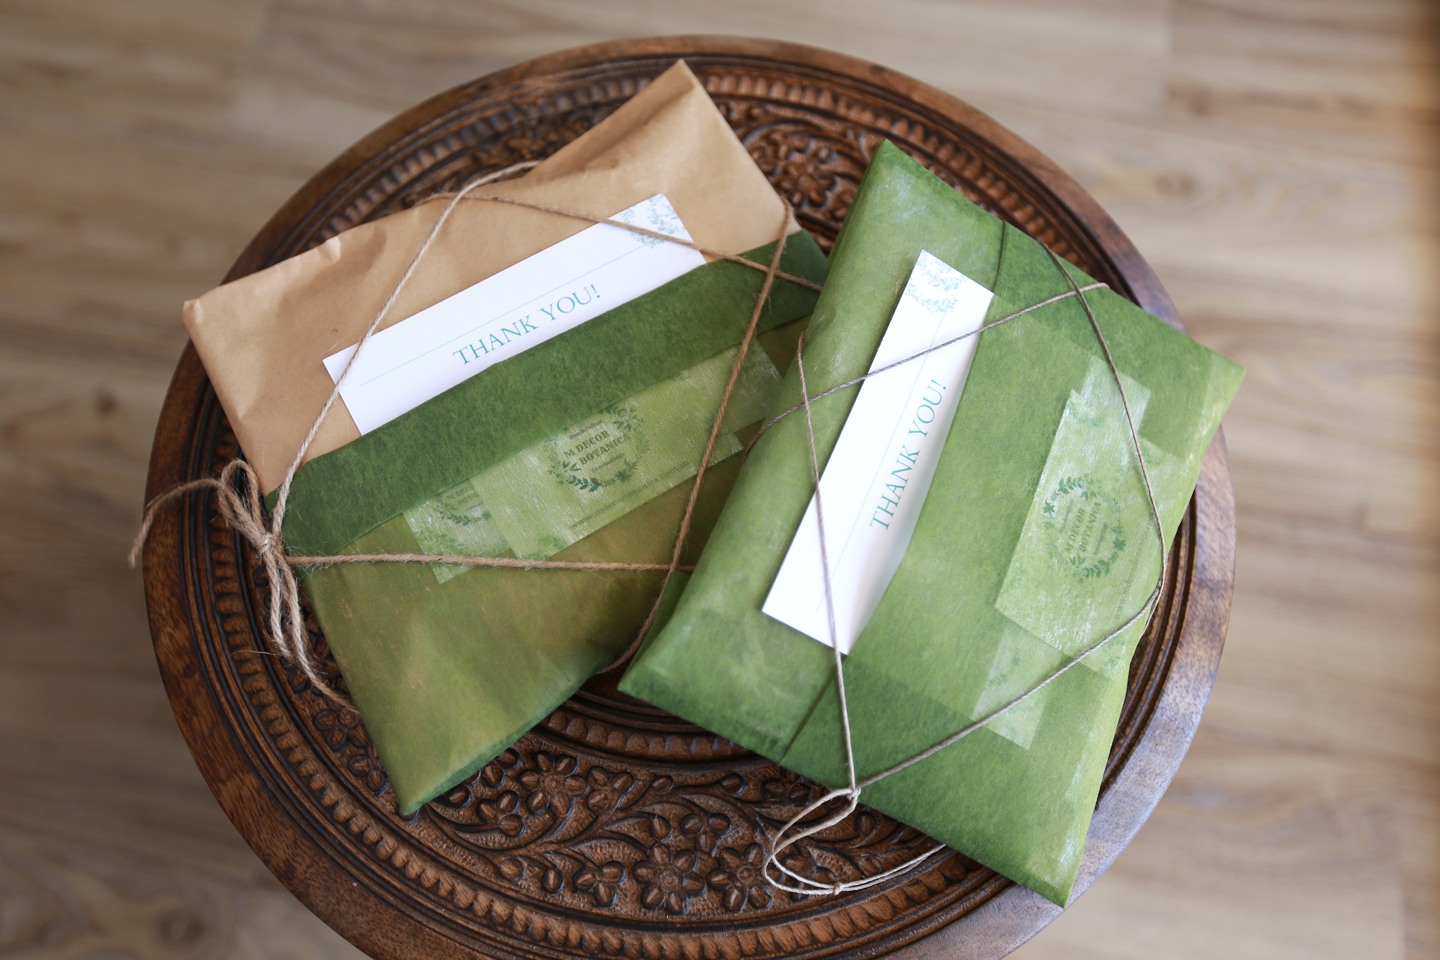 M Décor Botanica orders, beautifully gift wrapped in brown paper, natural green tissue, and string with a thank you note'